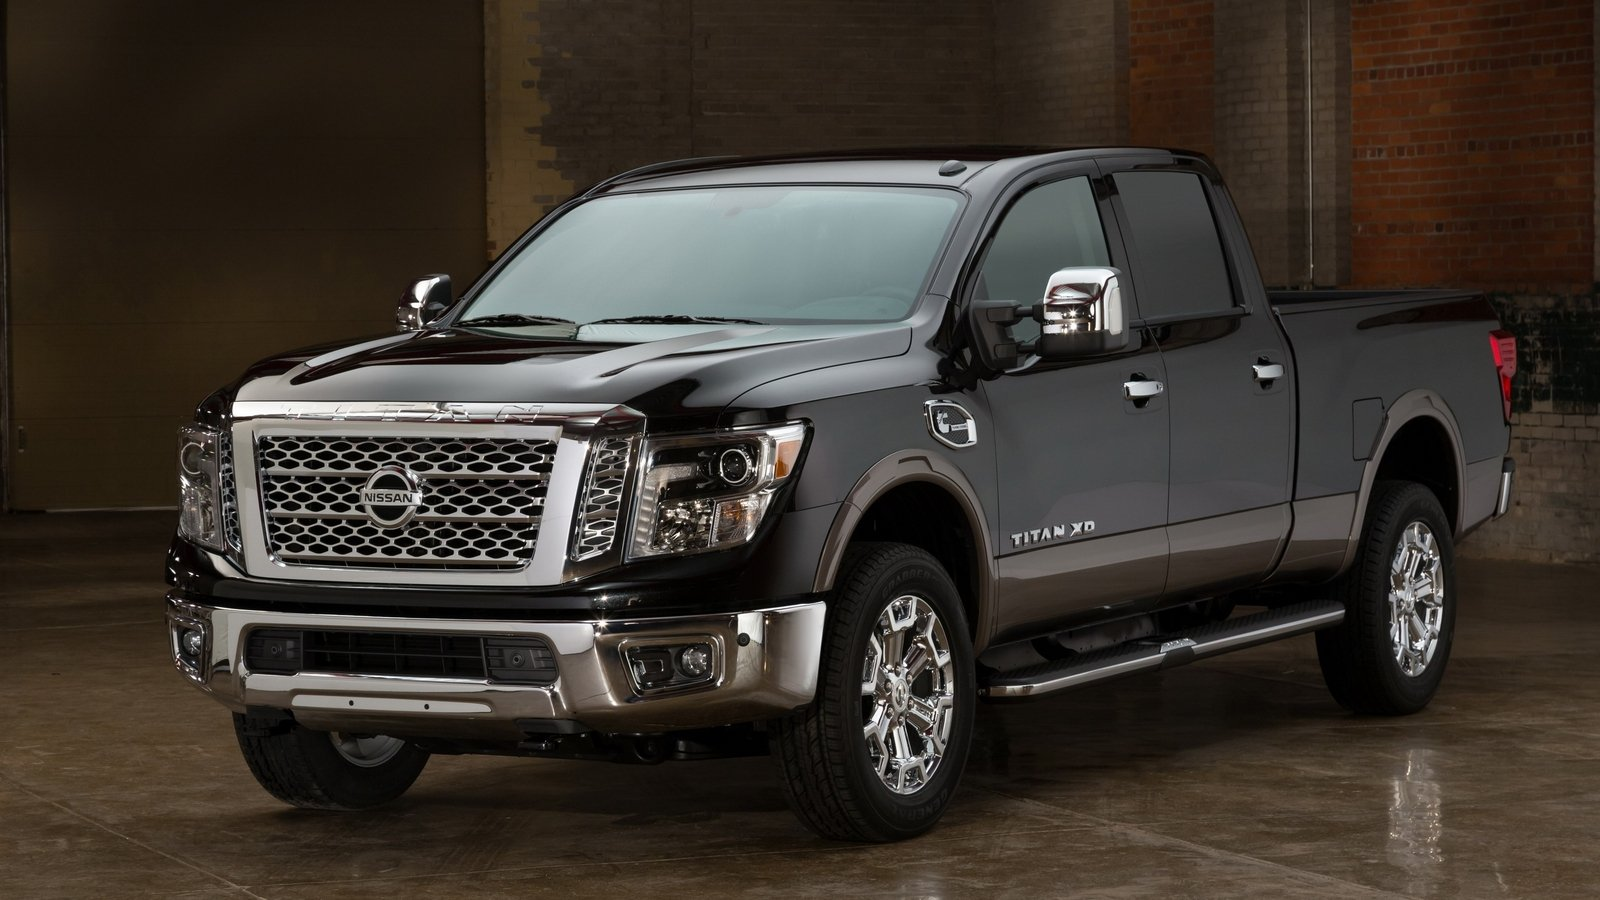 2016 Nissan Titan Xd Review Top Speed